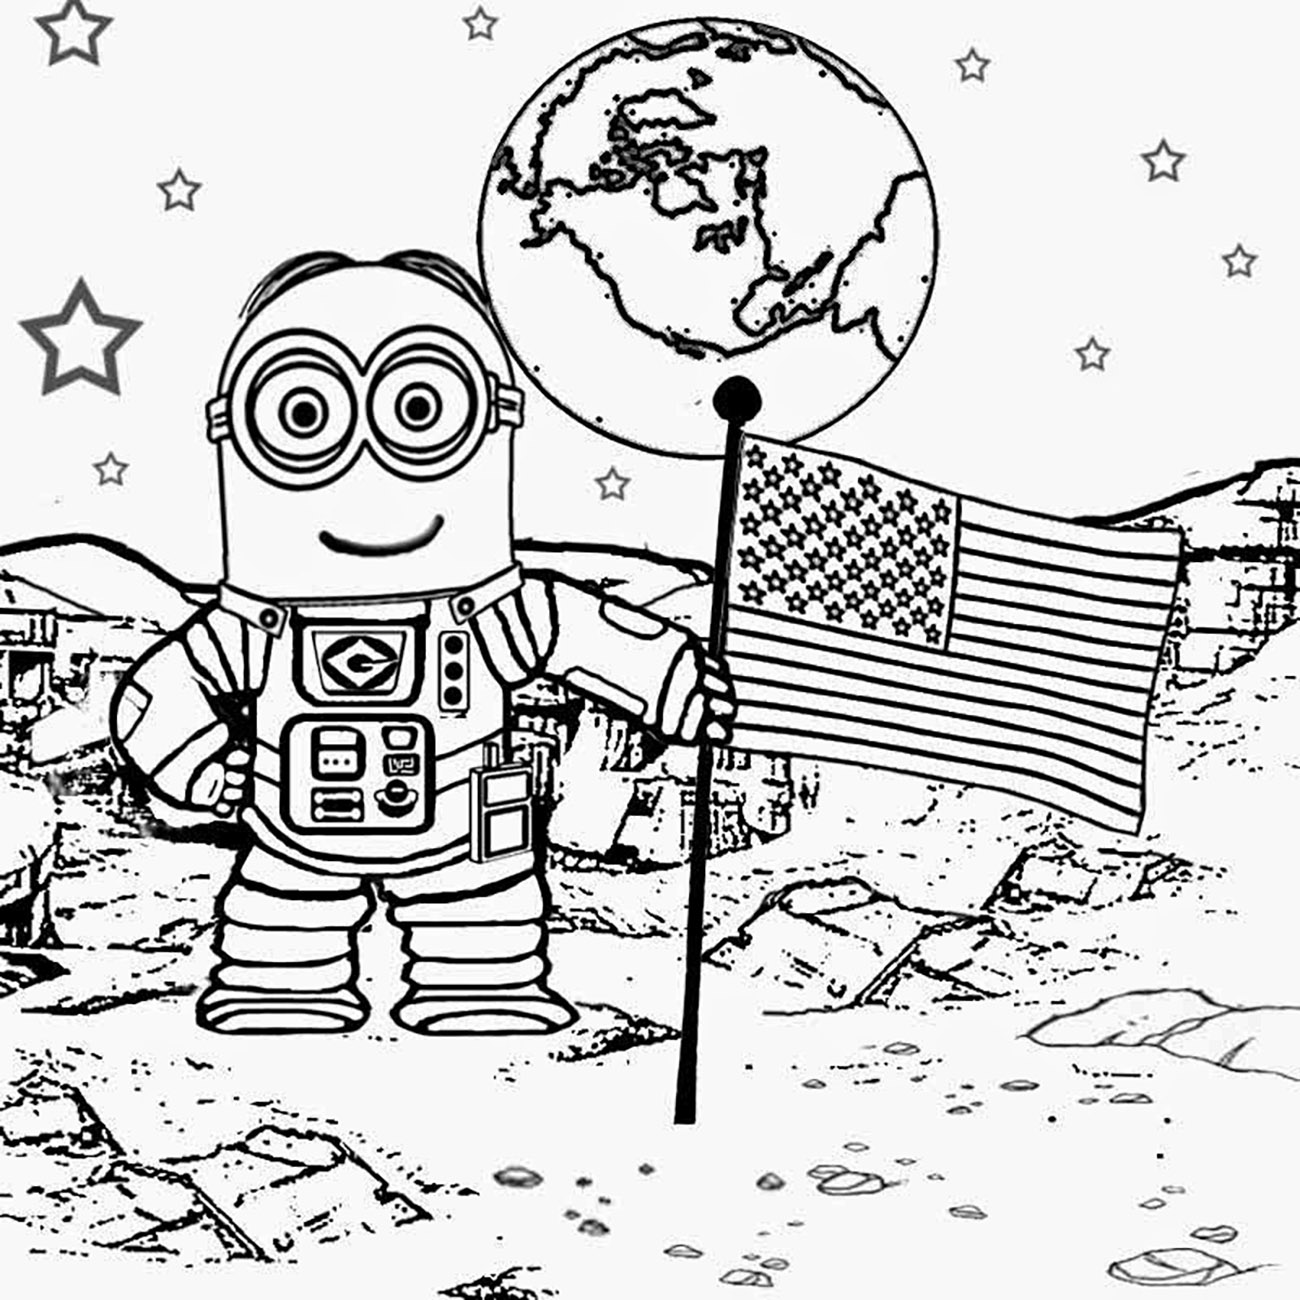 astronaut grabbing a star coloring page free printable - 800×800